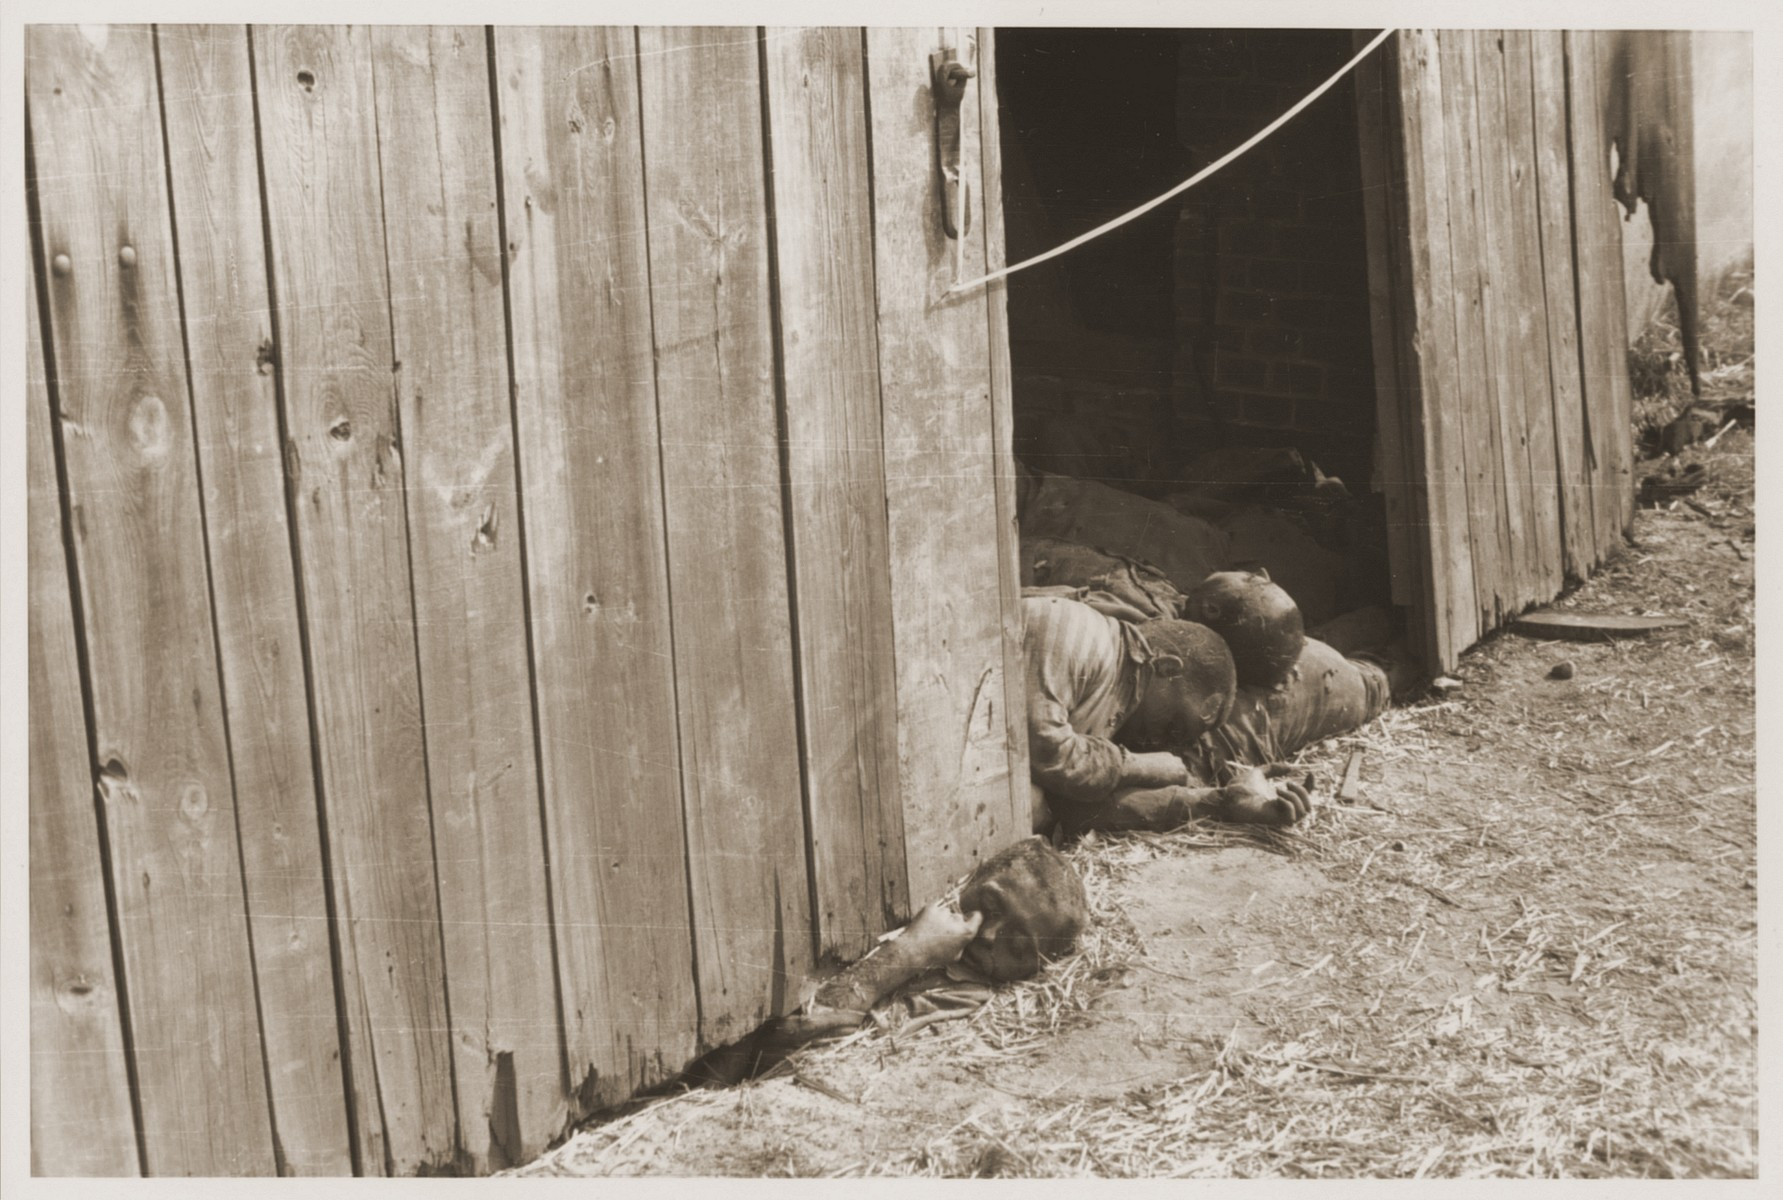 The charred bodies of prisoners just inside the entrance of the barn outside of Gardelegen.